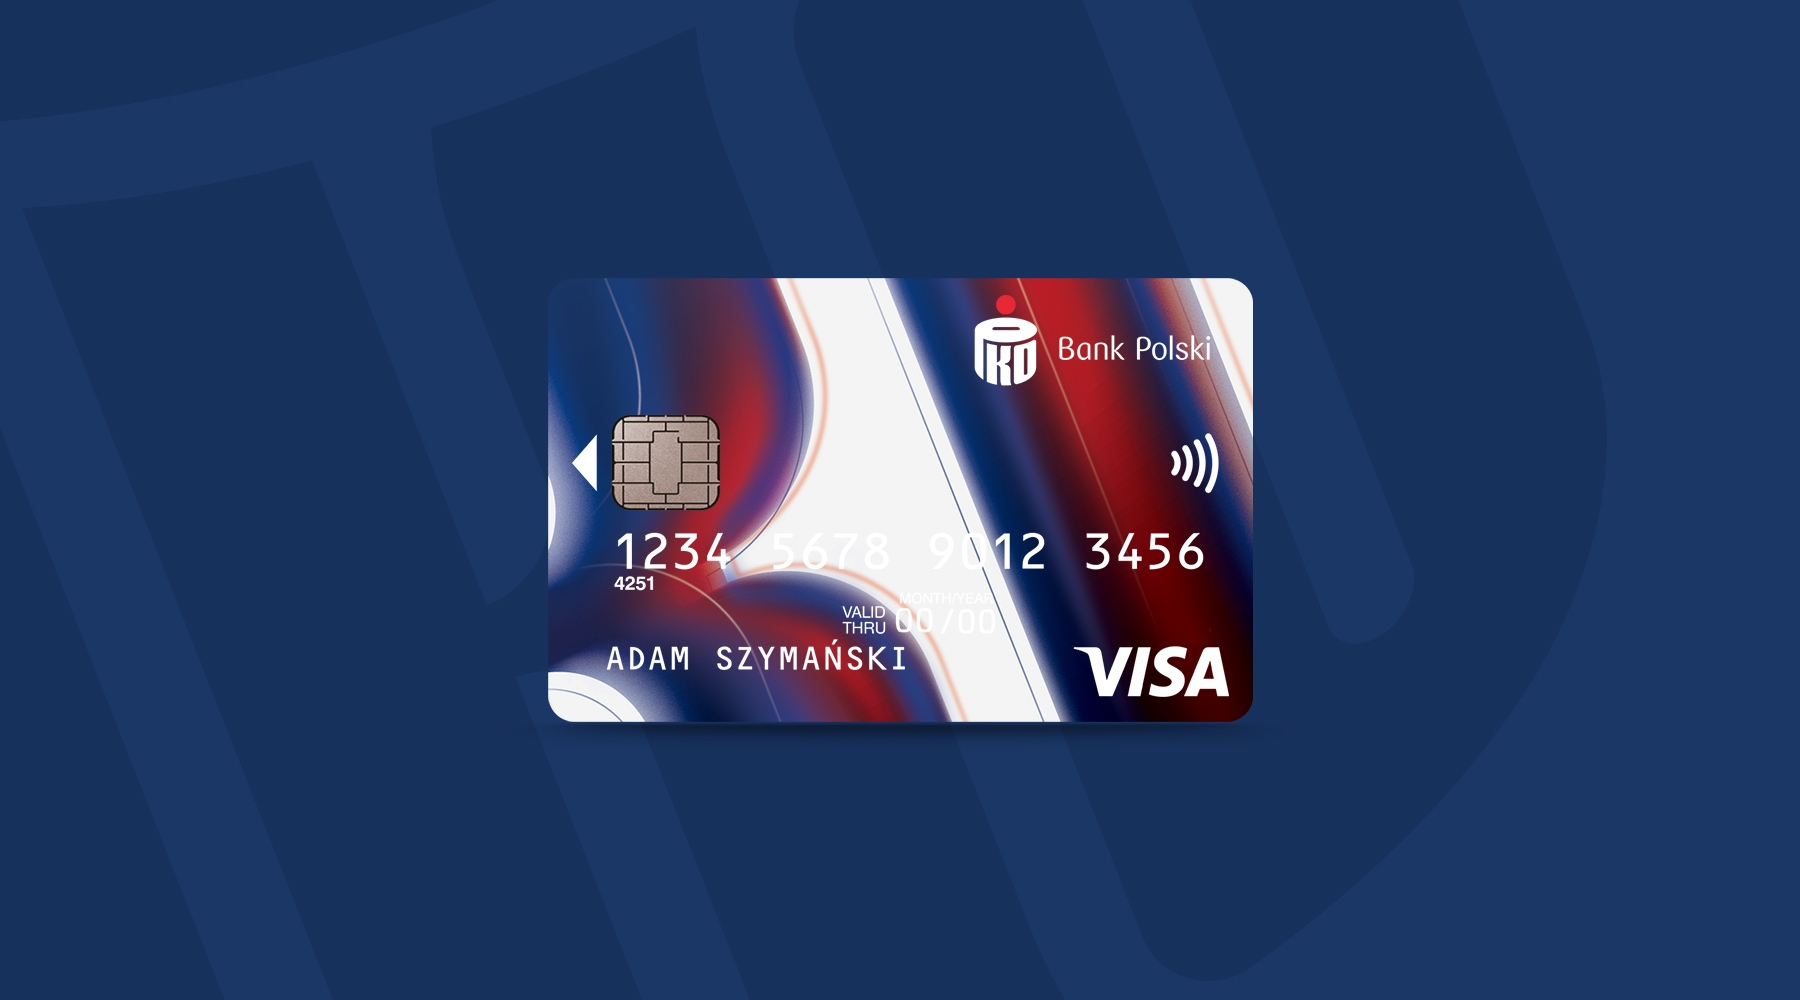 PKO Bank Polski navy blue and red card